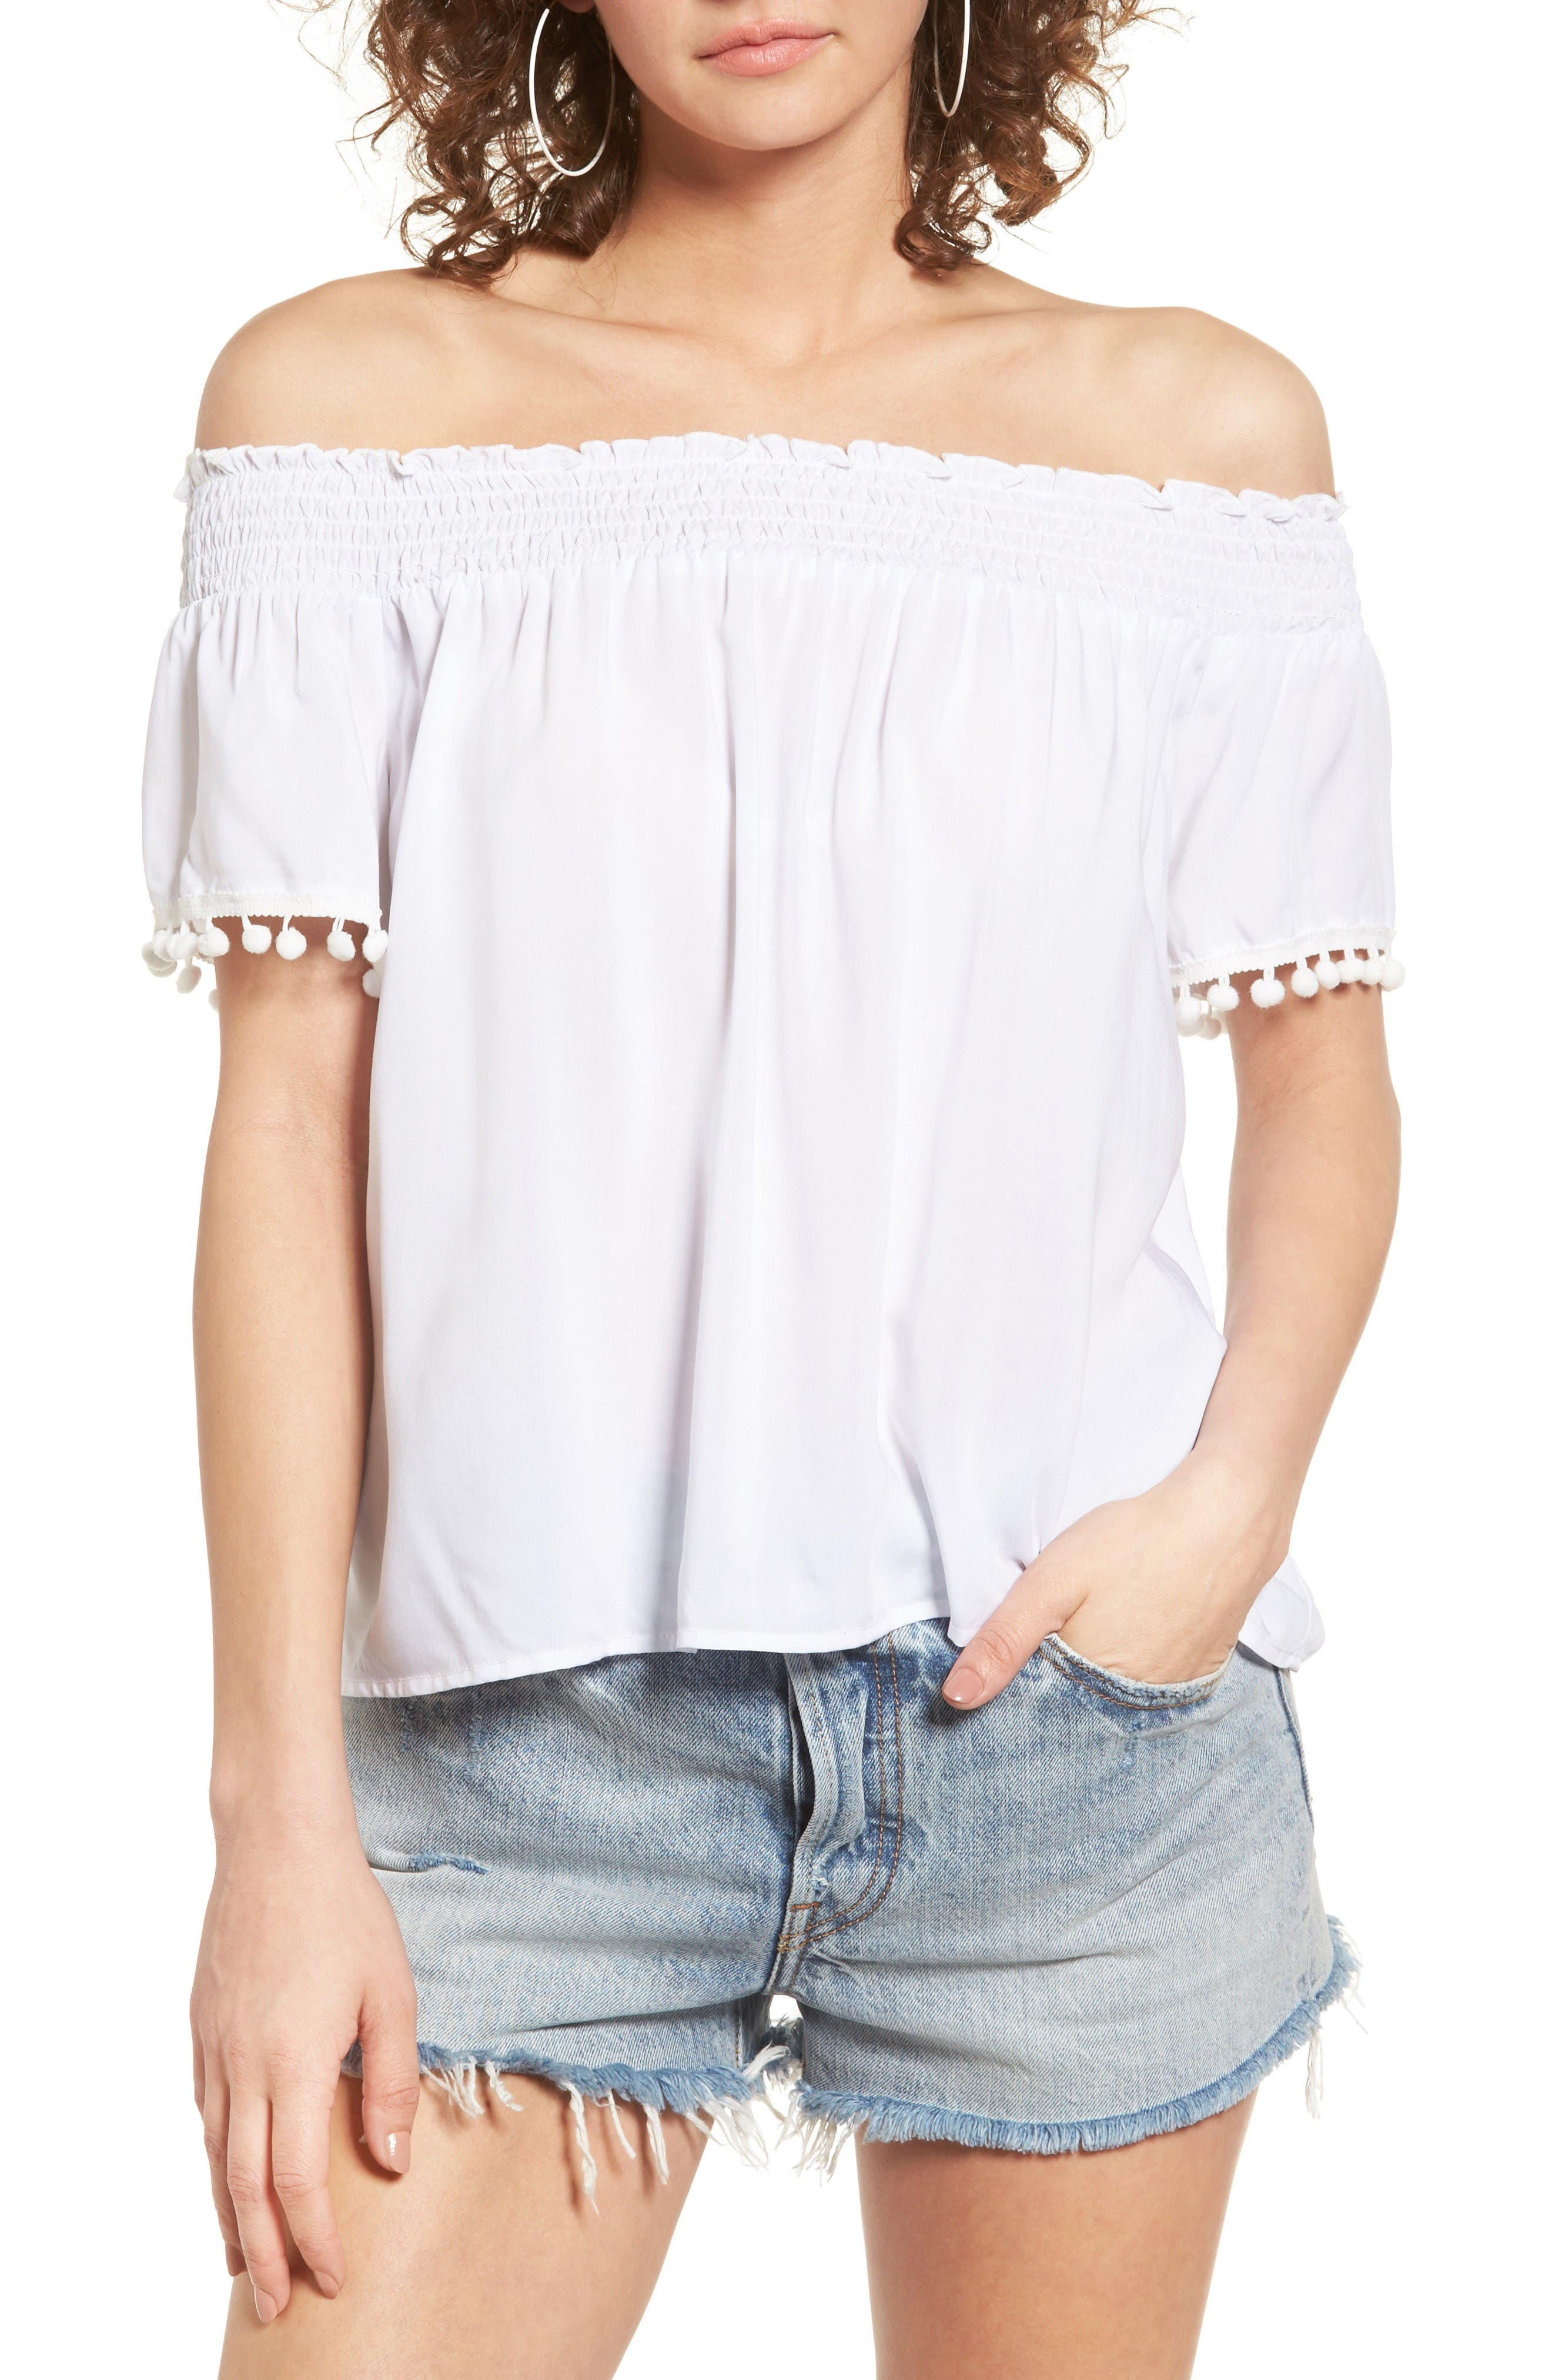 Alternate Image 1 Selected - Love, Fire Smocked Check Off the Shoulder Top